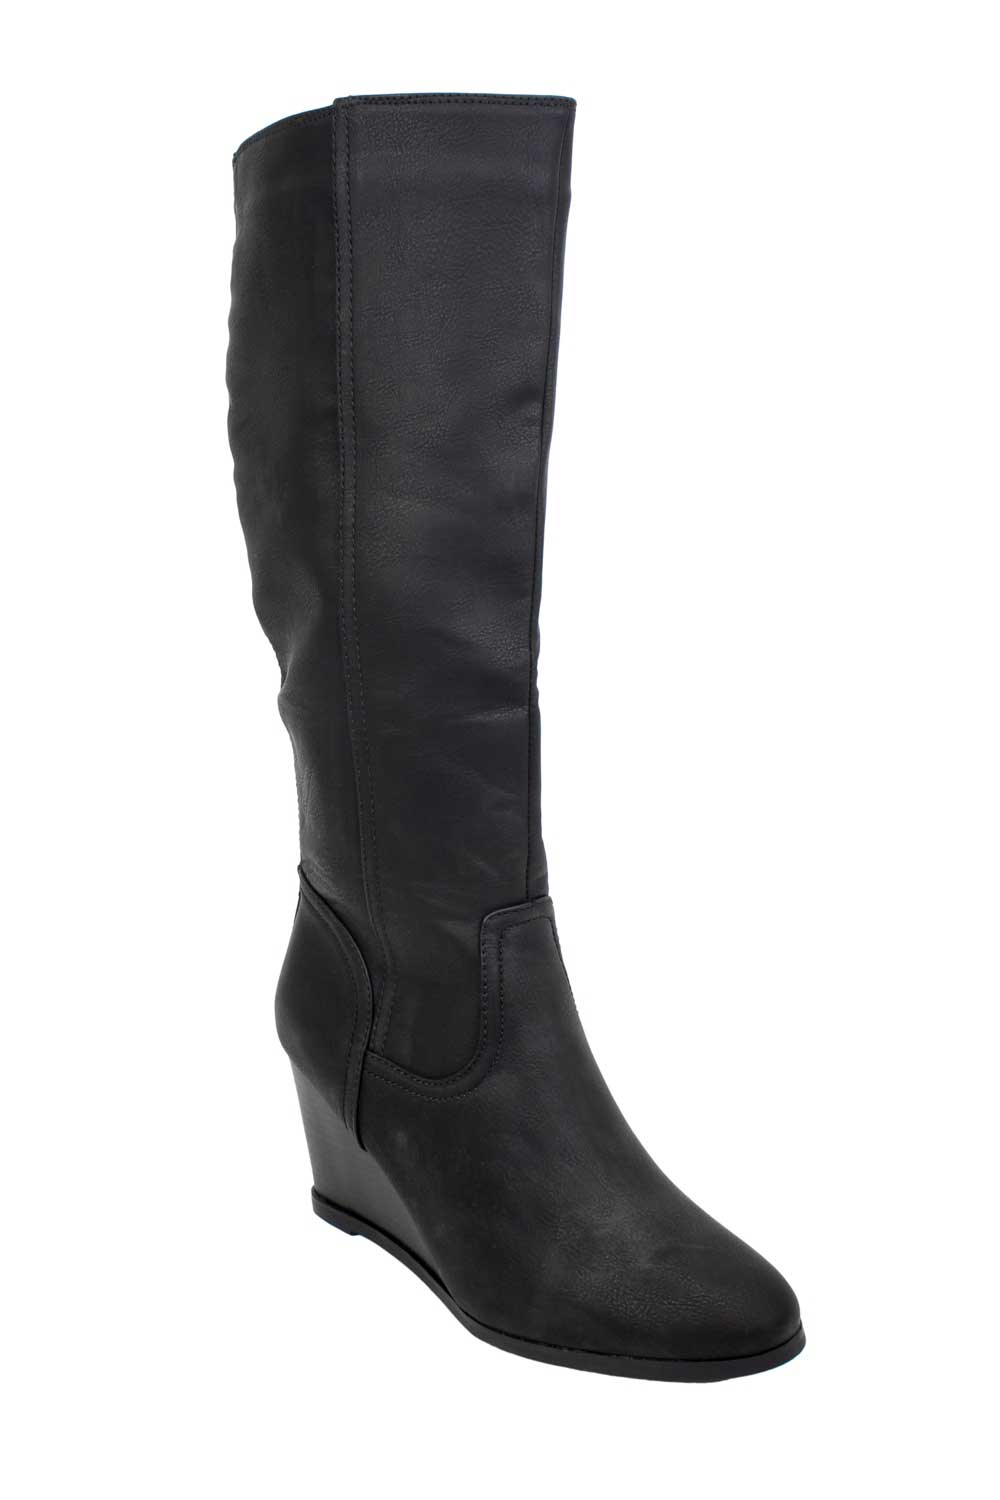 SO Women's Tall Wedge Boots Economical, stylish, and eye-catching shoes